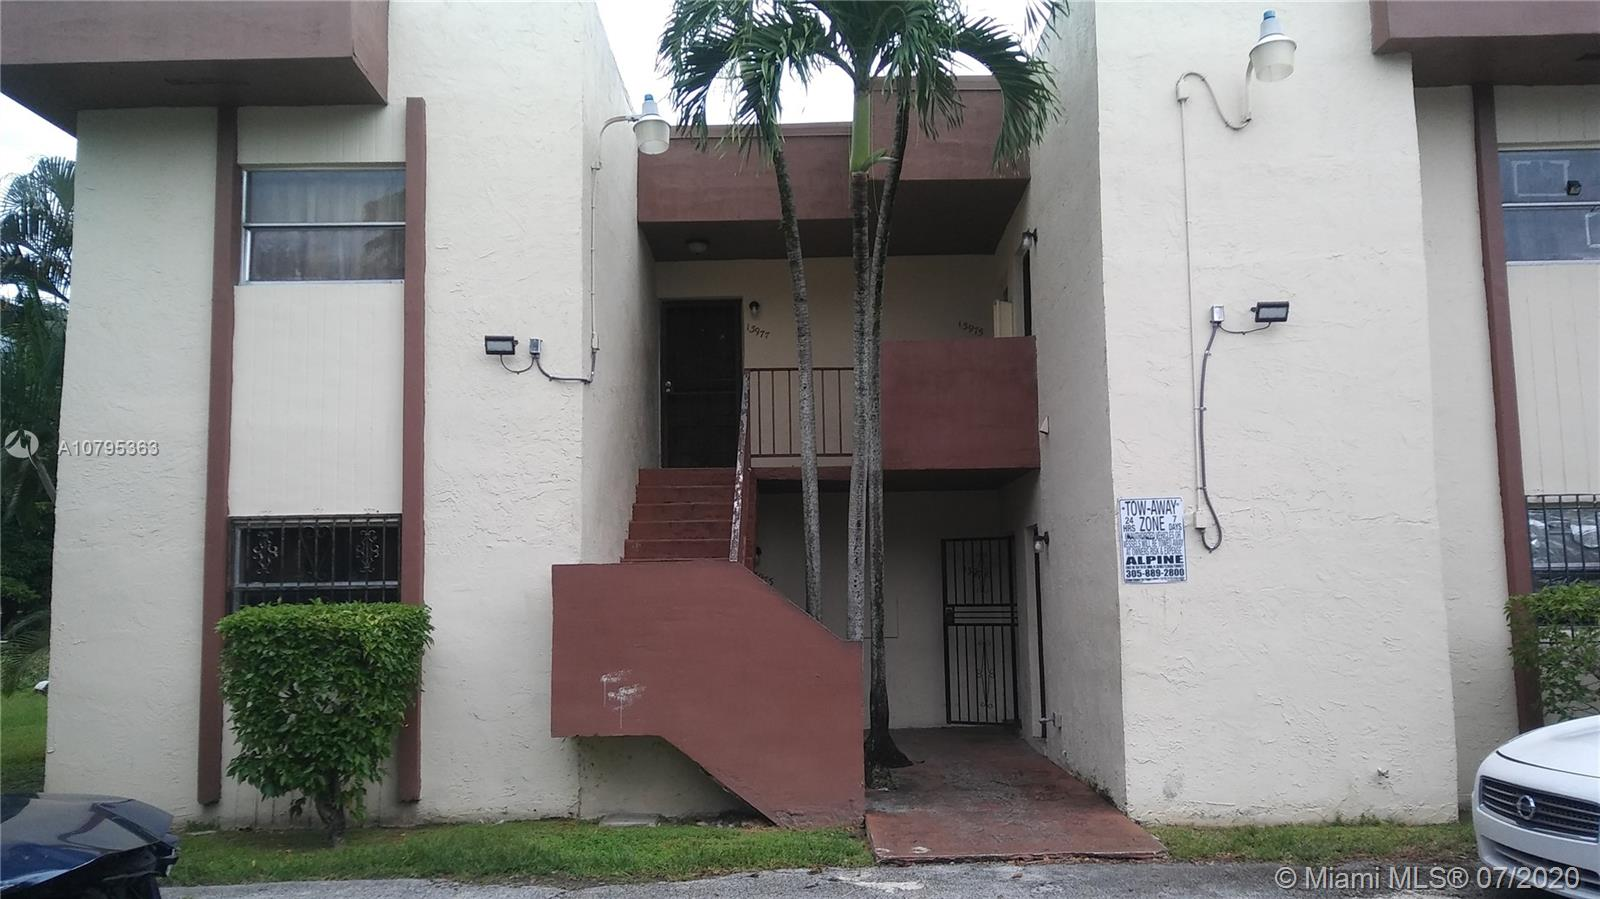 13977 NE 2 ave #7 For Sale A10795363, FL